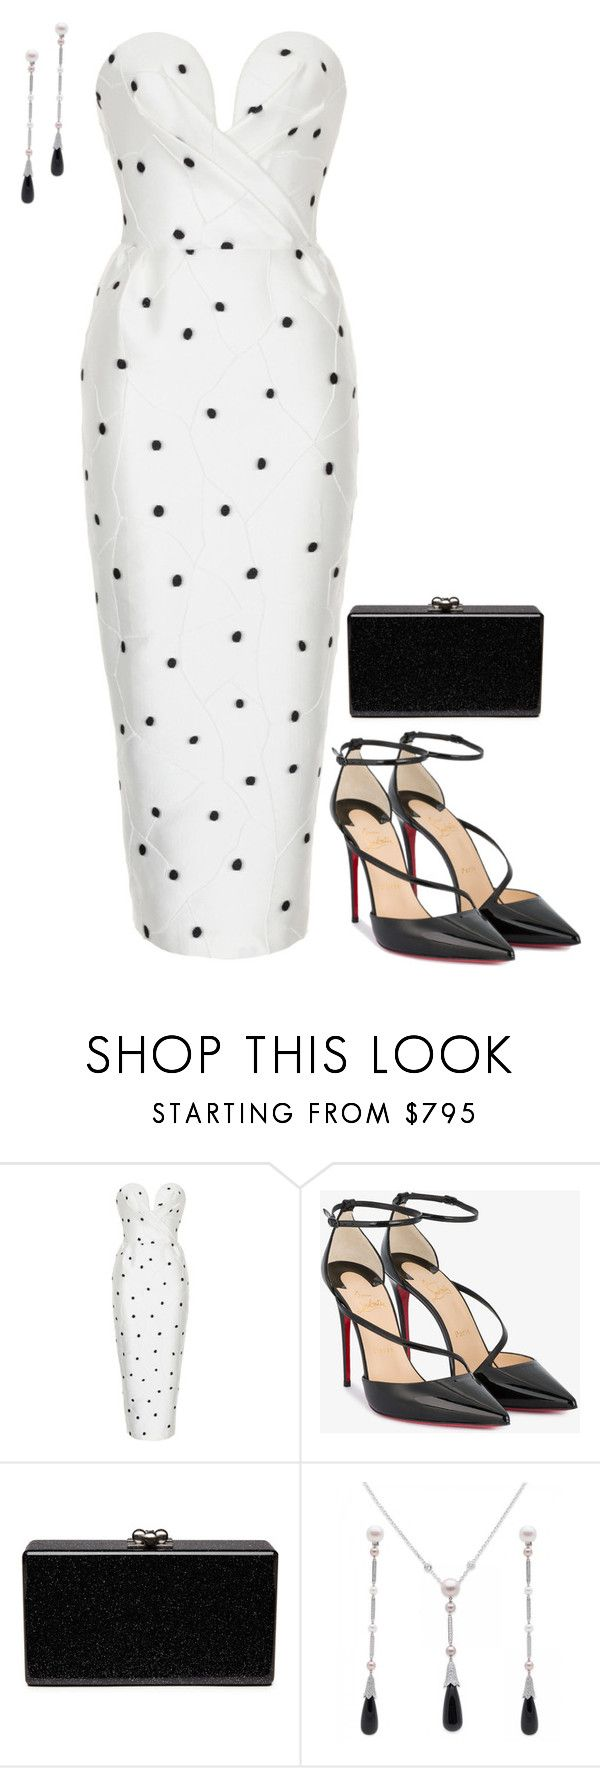 """Untitled #4159"" by injie-anis ❤ liked on Polyvore featuring Rasario, Christian Louboutin, Edie Parker and Cartier"